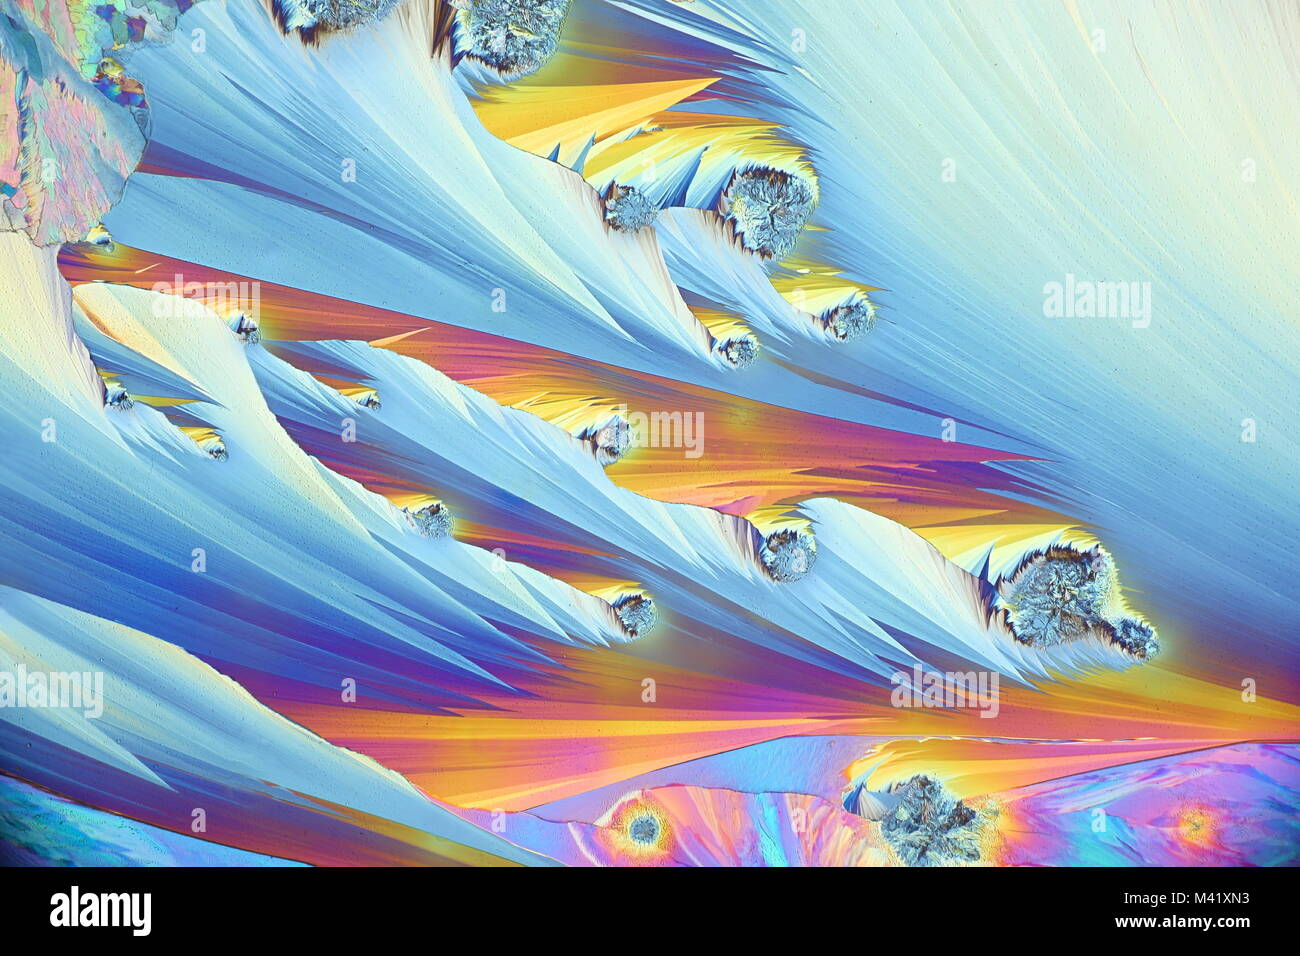 Crystals of a common painkiller Paracetamol. Microscope image, photographed in  polarized light. - Stock Image